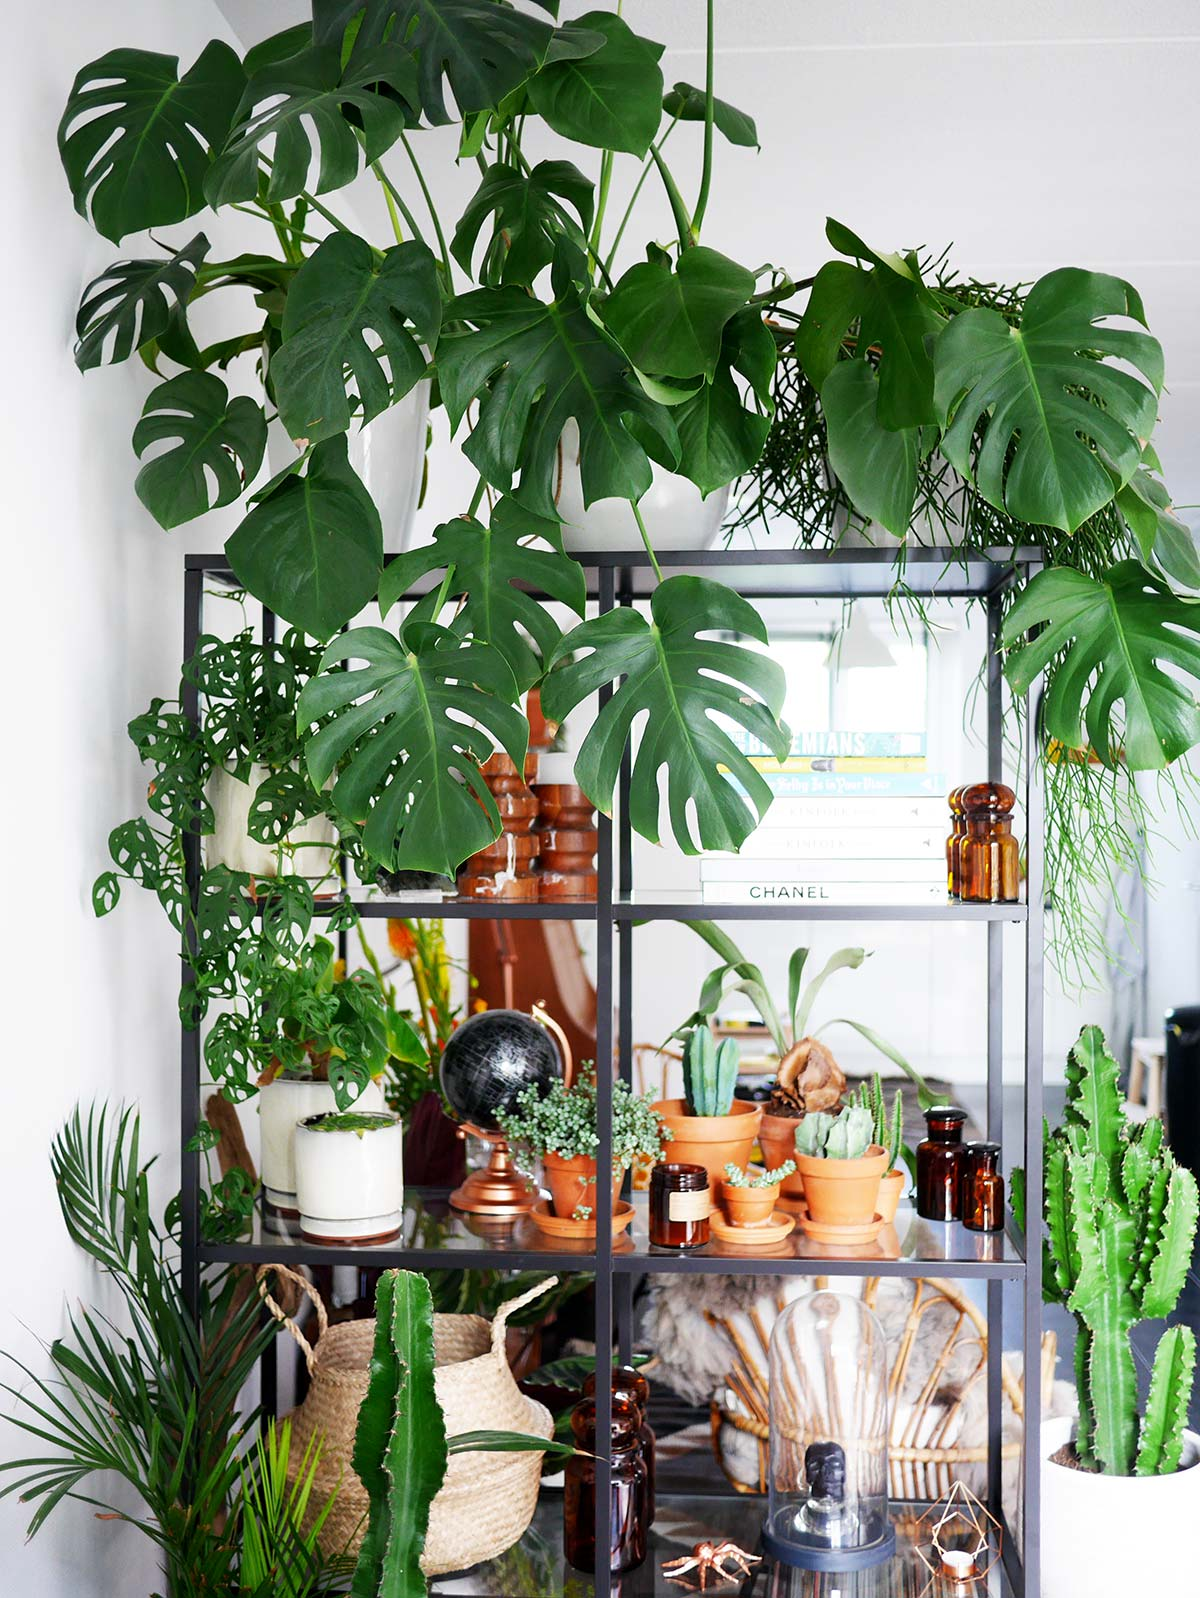 Monstera Care Guide - How to grow a huge Monstera fast. | on monstera philo cheesecake, monstera pertusum, monstera leaves, monstera direct sun, monstera sunny window, monstera thai constellation, monstera leaf browning,